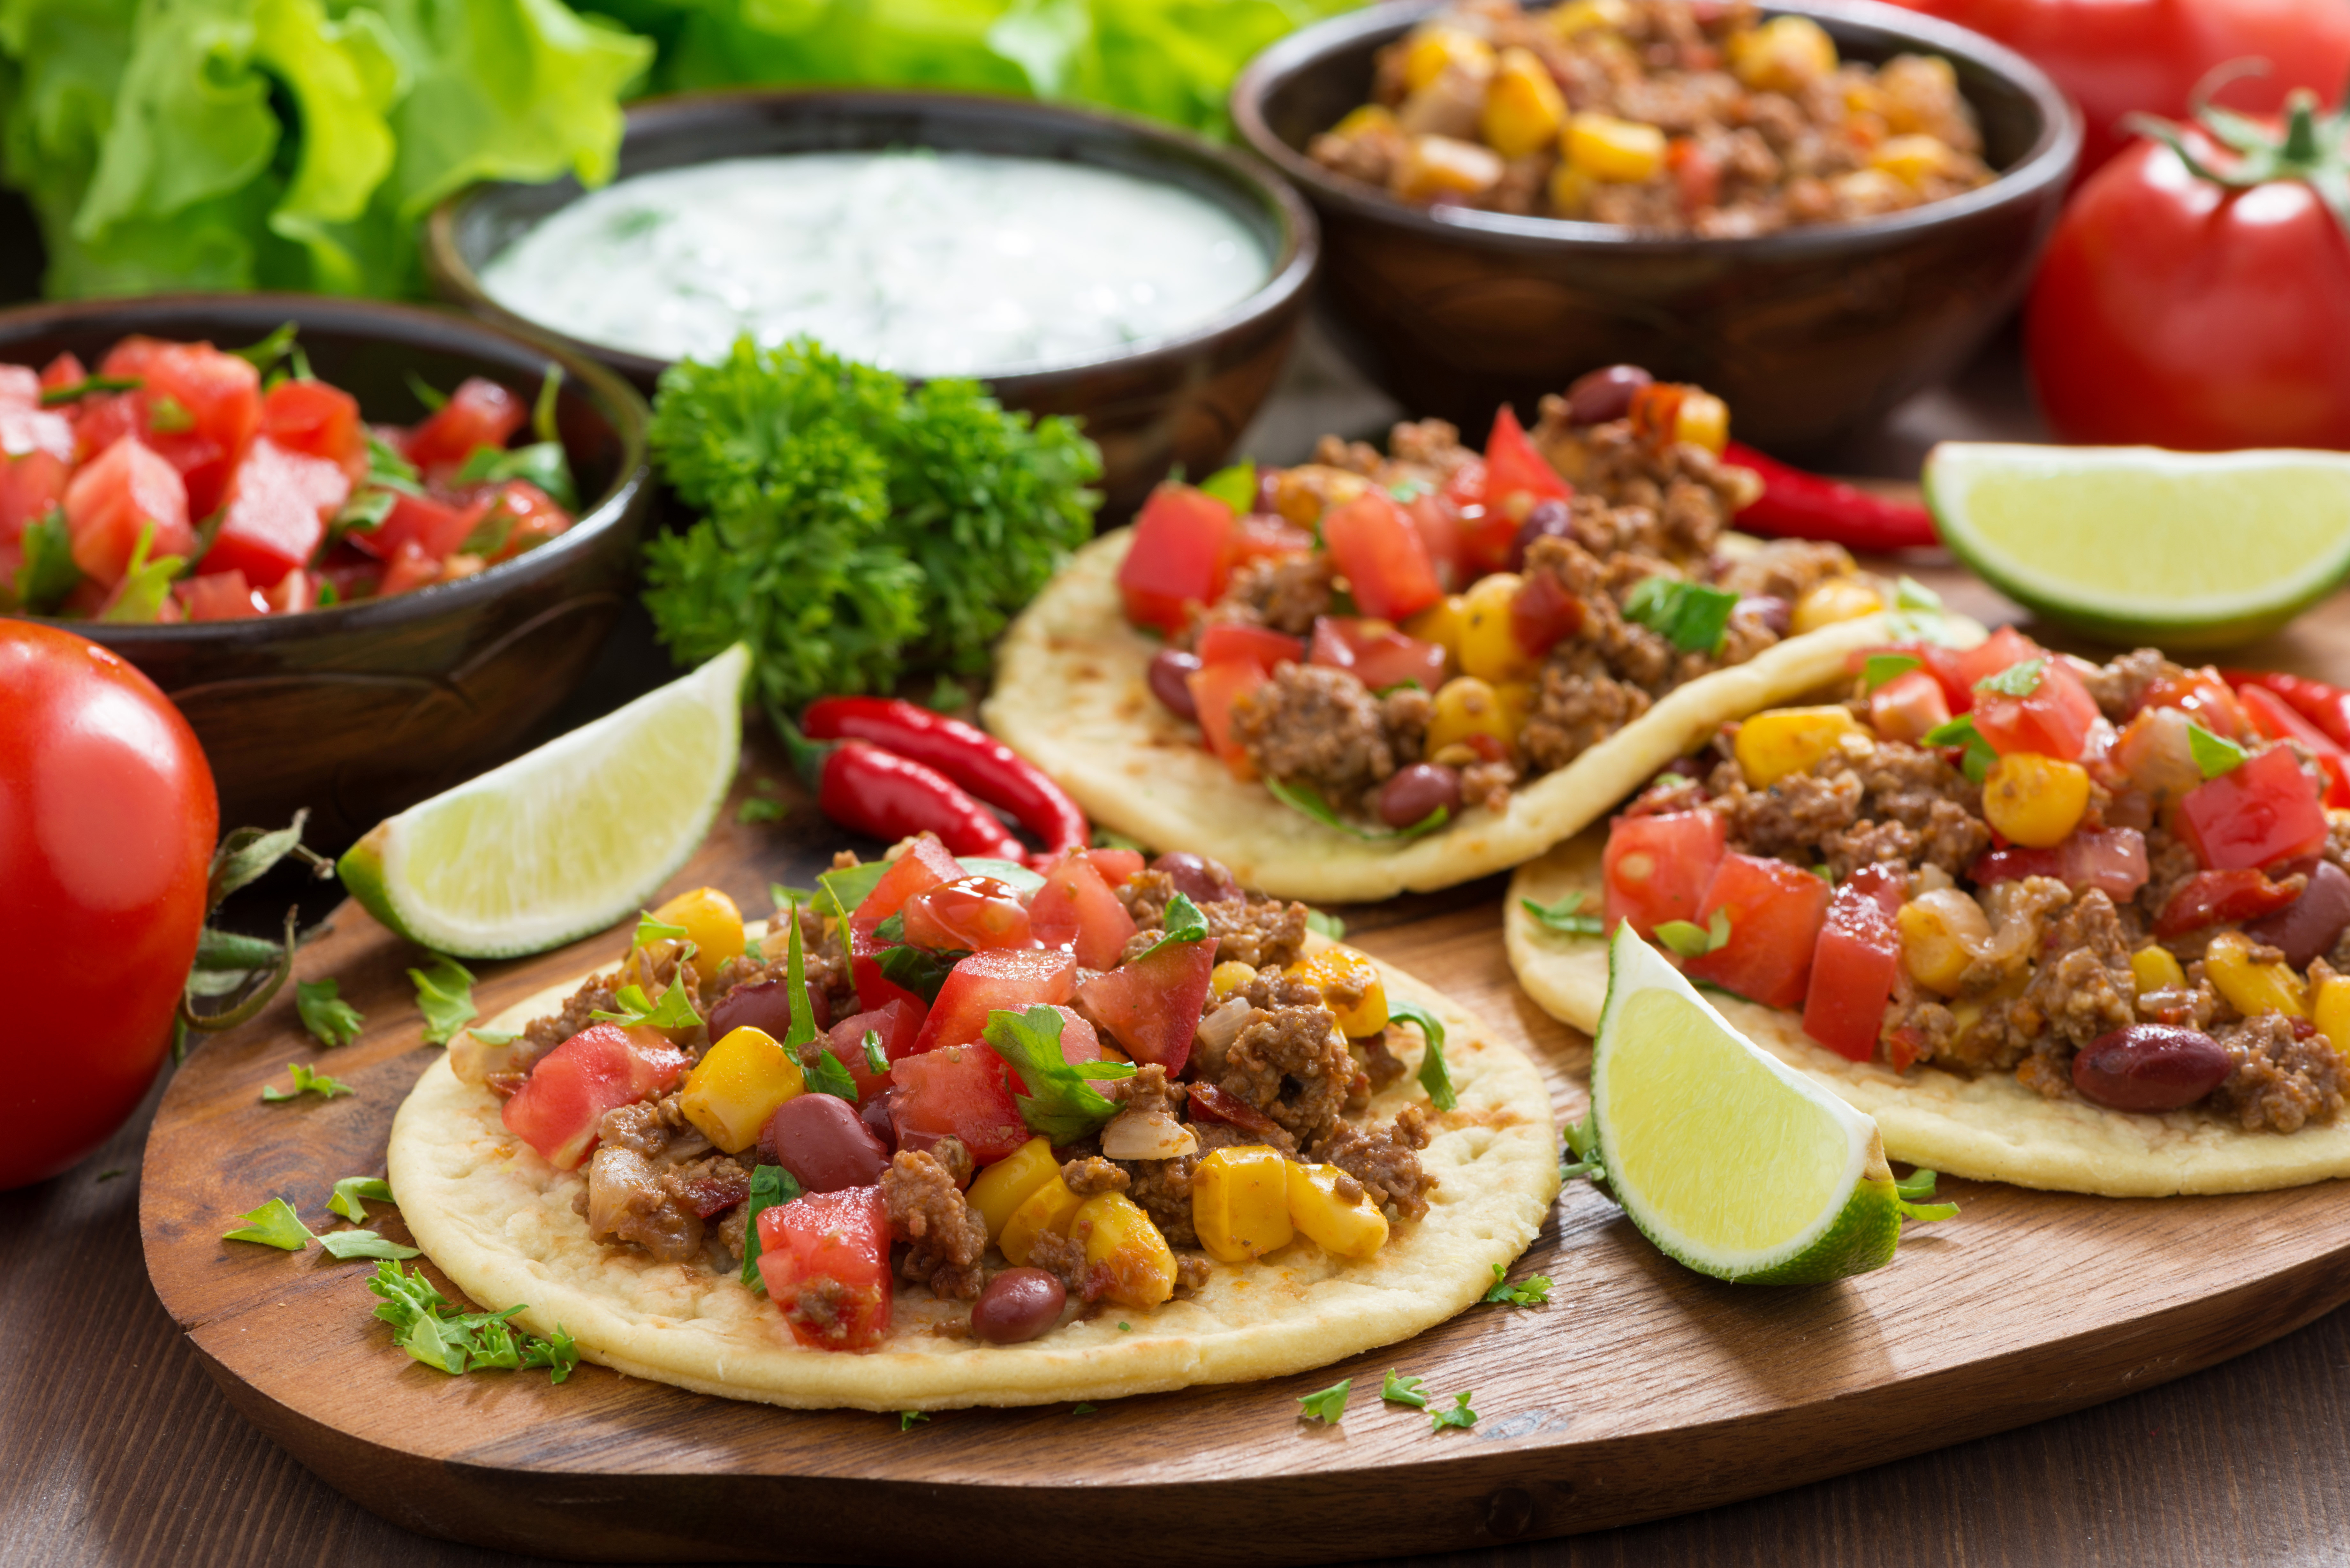 Mexican cuisine – tortillas with chili con carne, tomato salsa